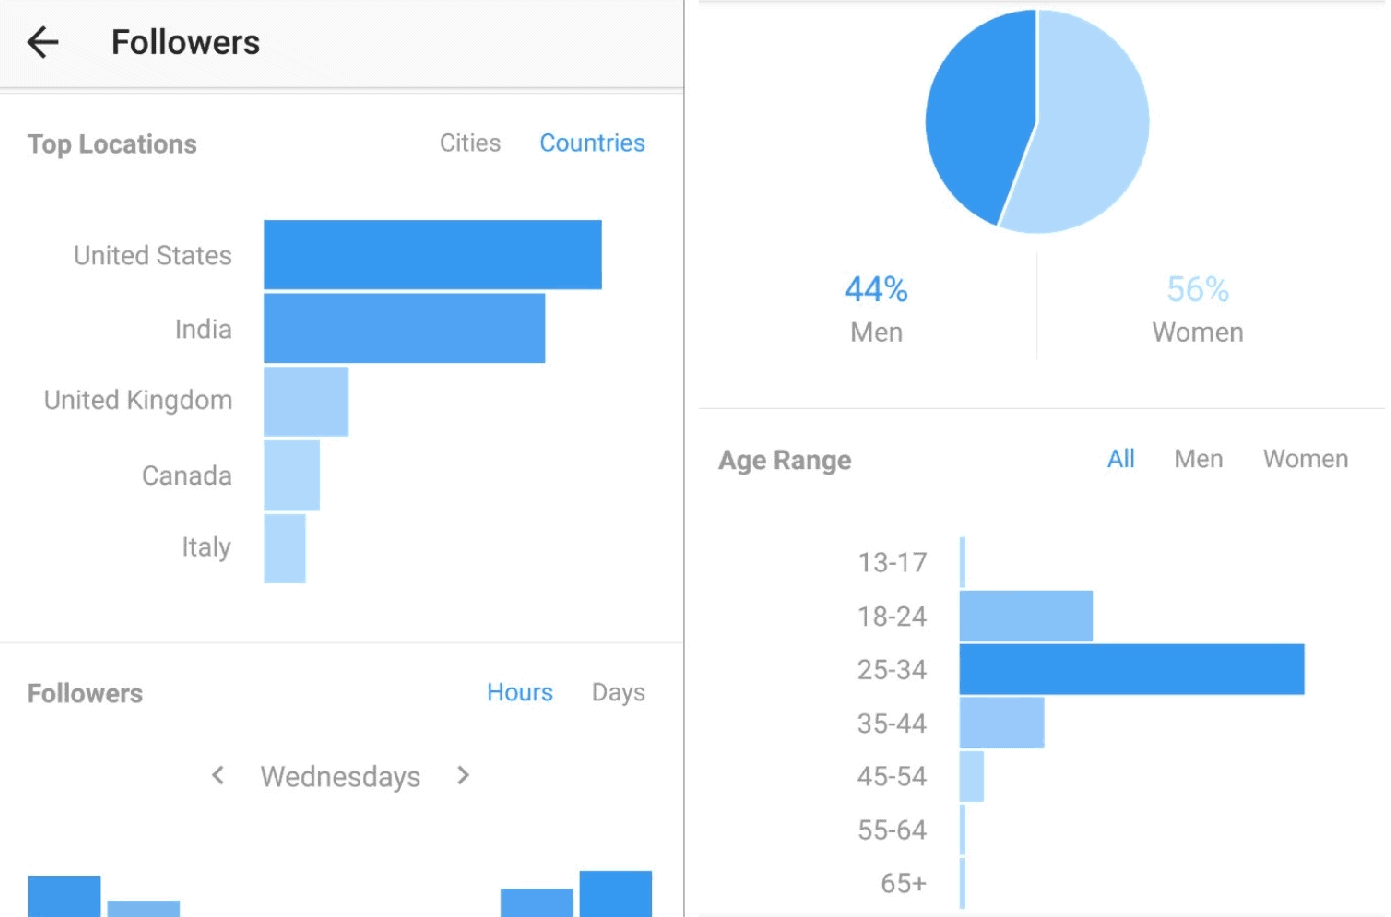 Demographics - How to become an instagram influencer